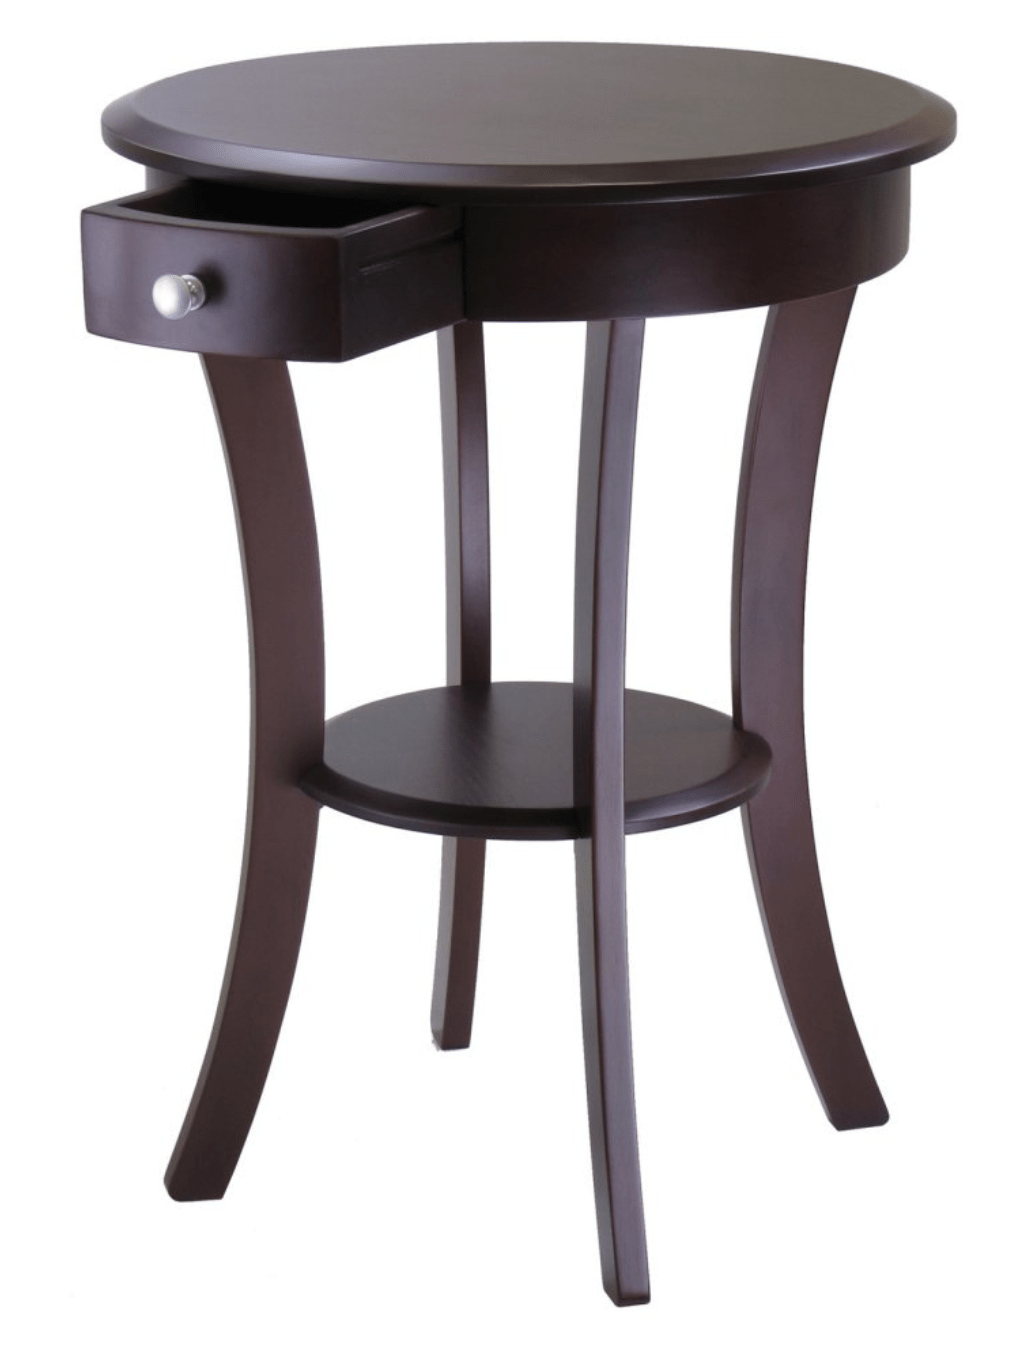 lovely small accent table for round wood min contemporary the bedroom pedestal end bedside chest black marble west elm lamps ikea childrens storage tablecloth brass side outdoor